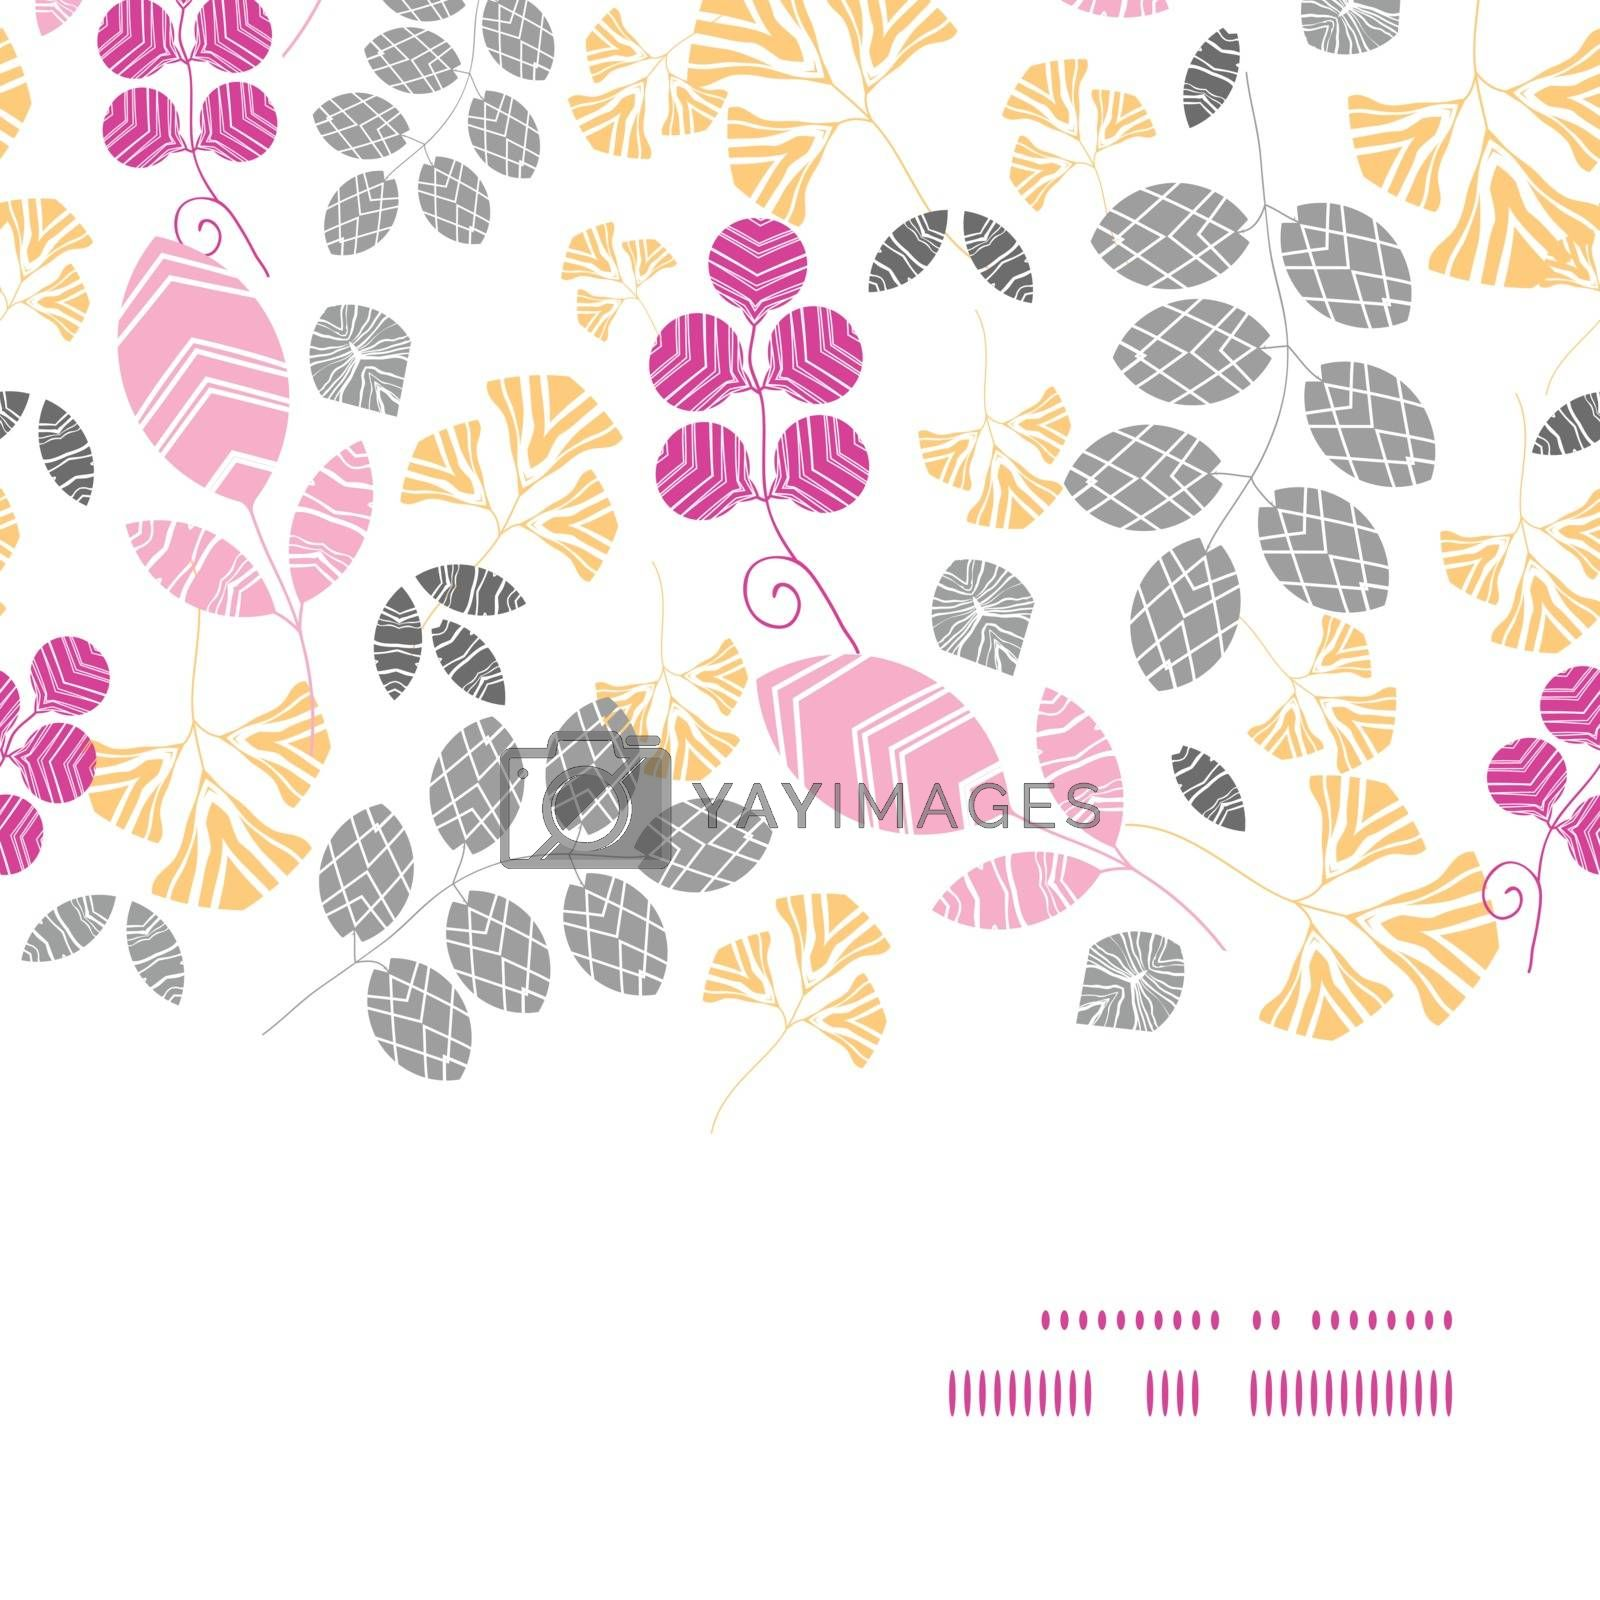 Vector abstract pink, yellow and gray leaves horizontal frame seamless pattern background graphic design